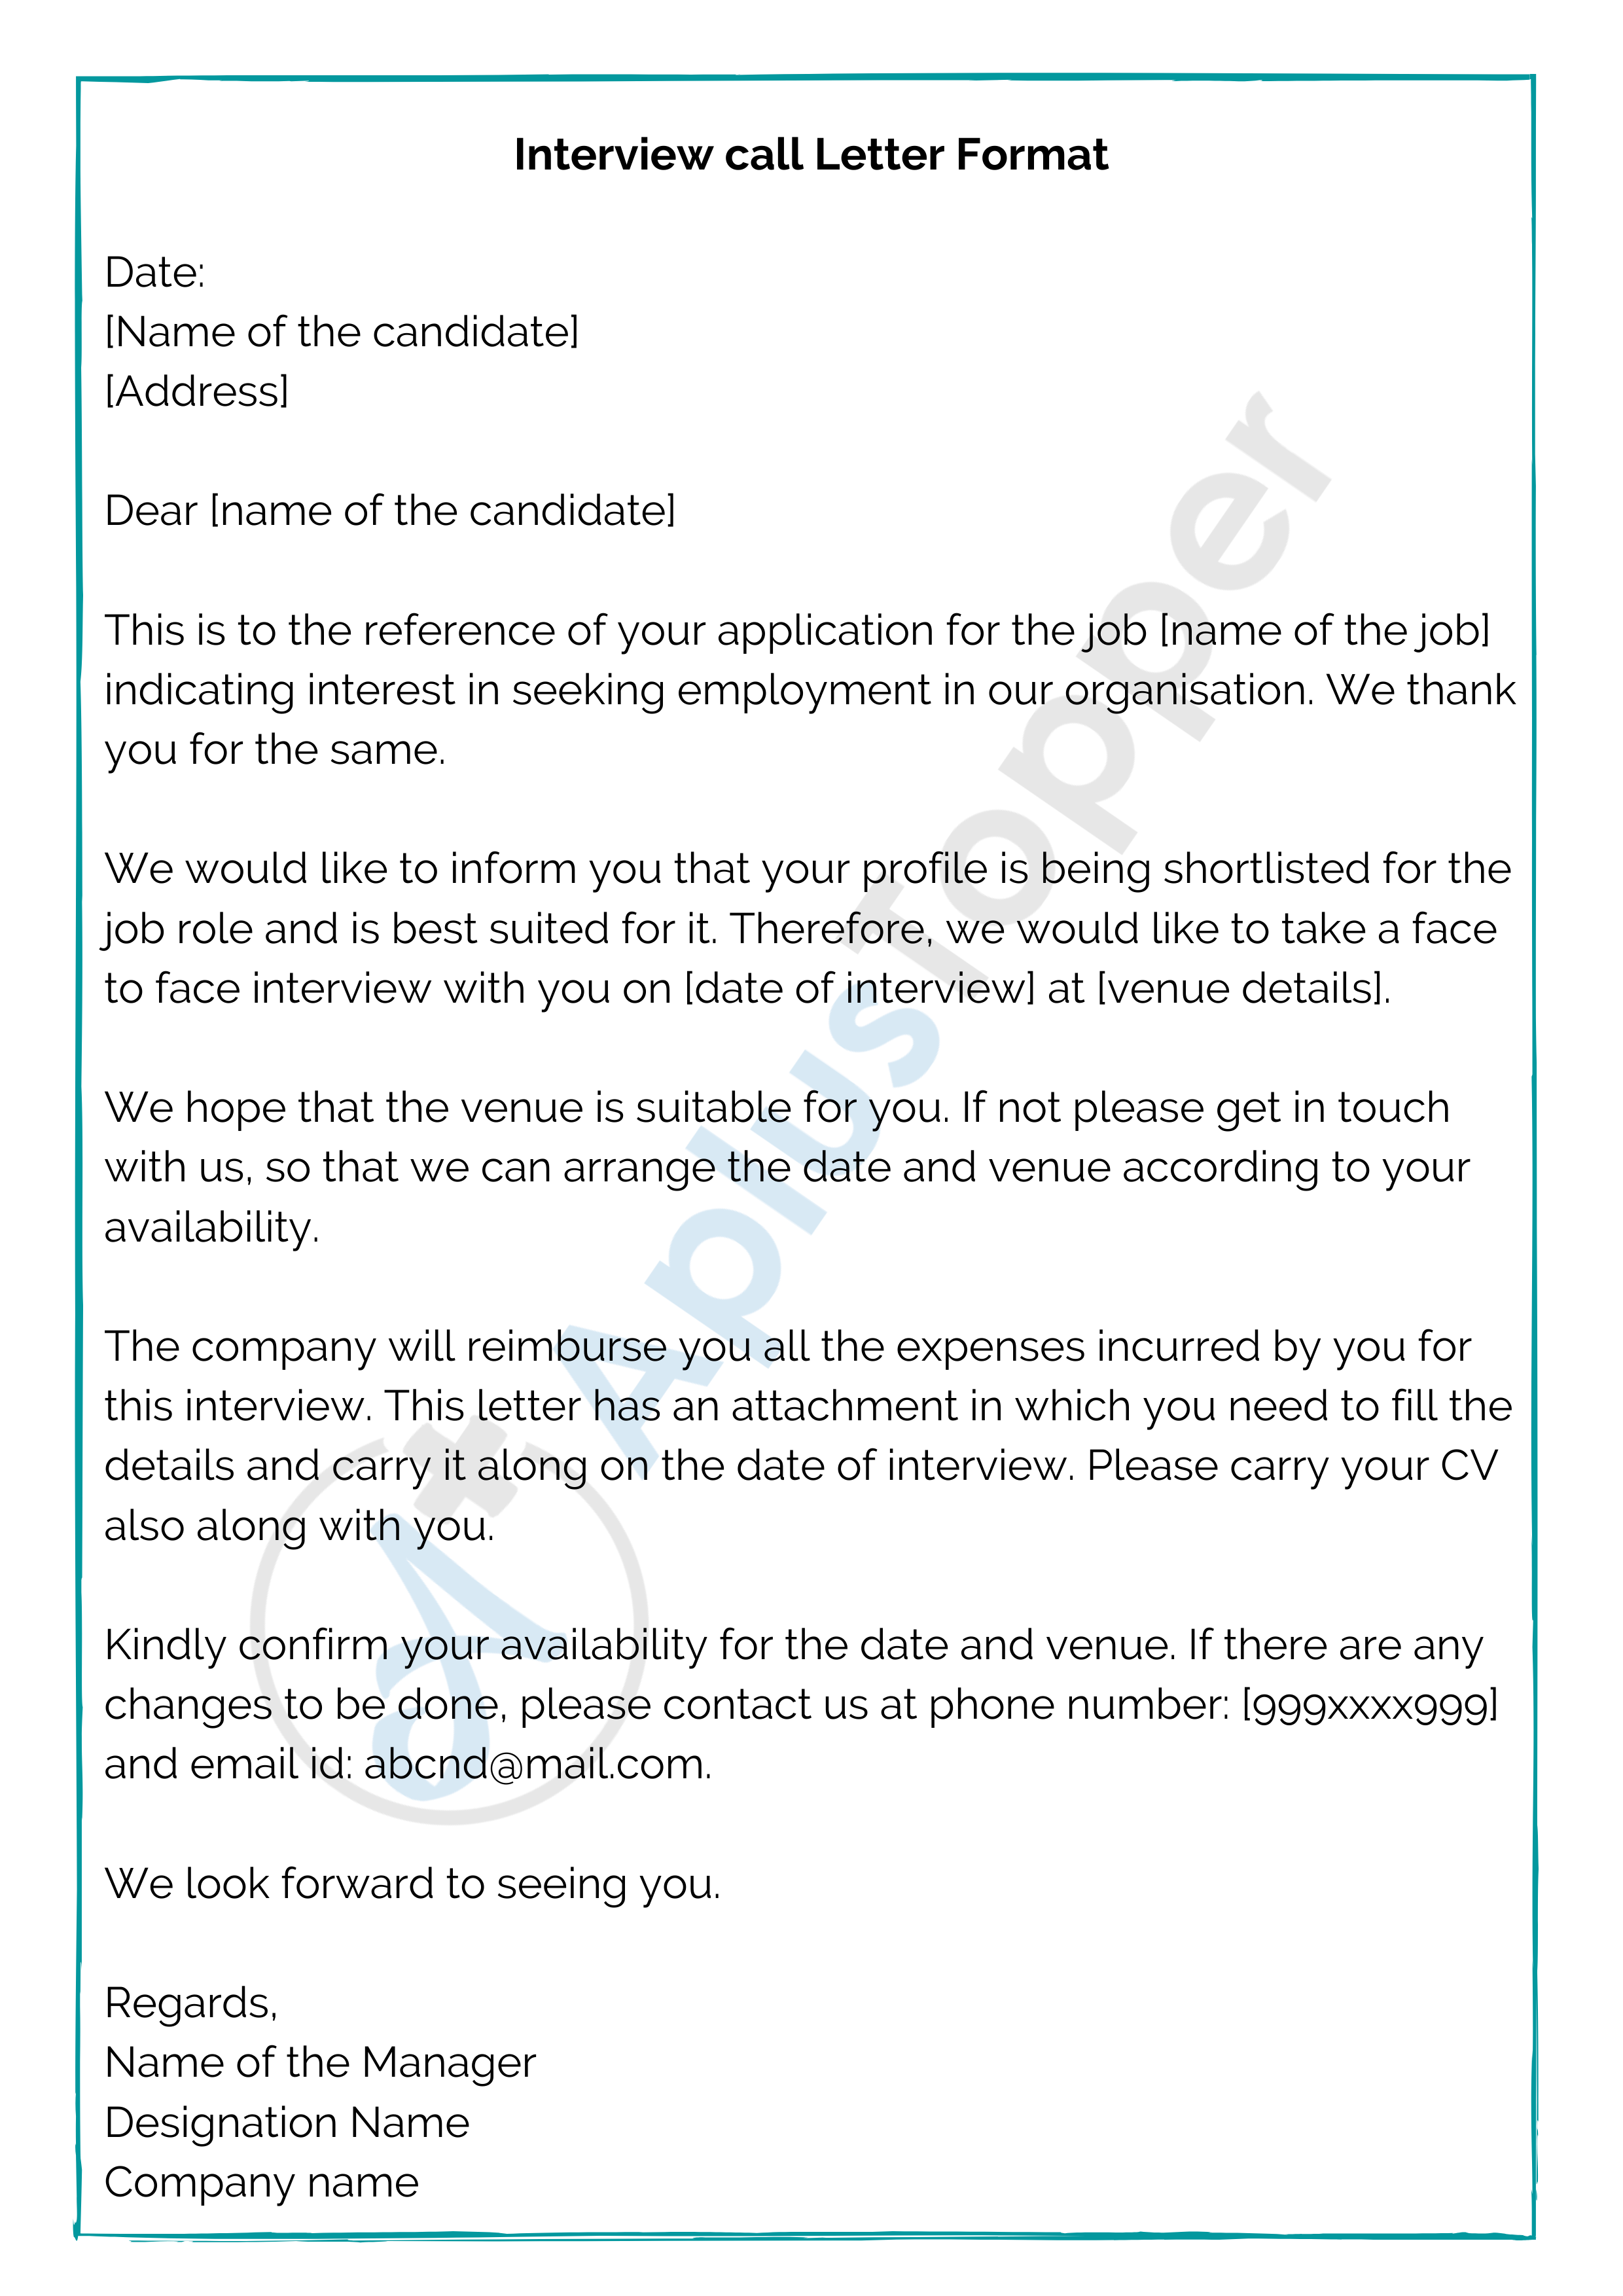 Interview Call Letter Format